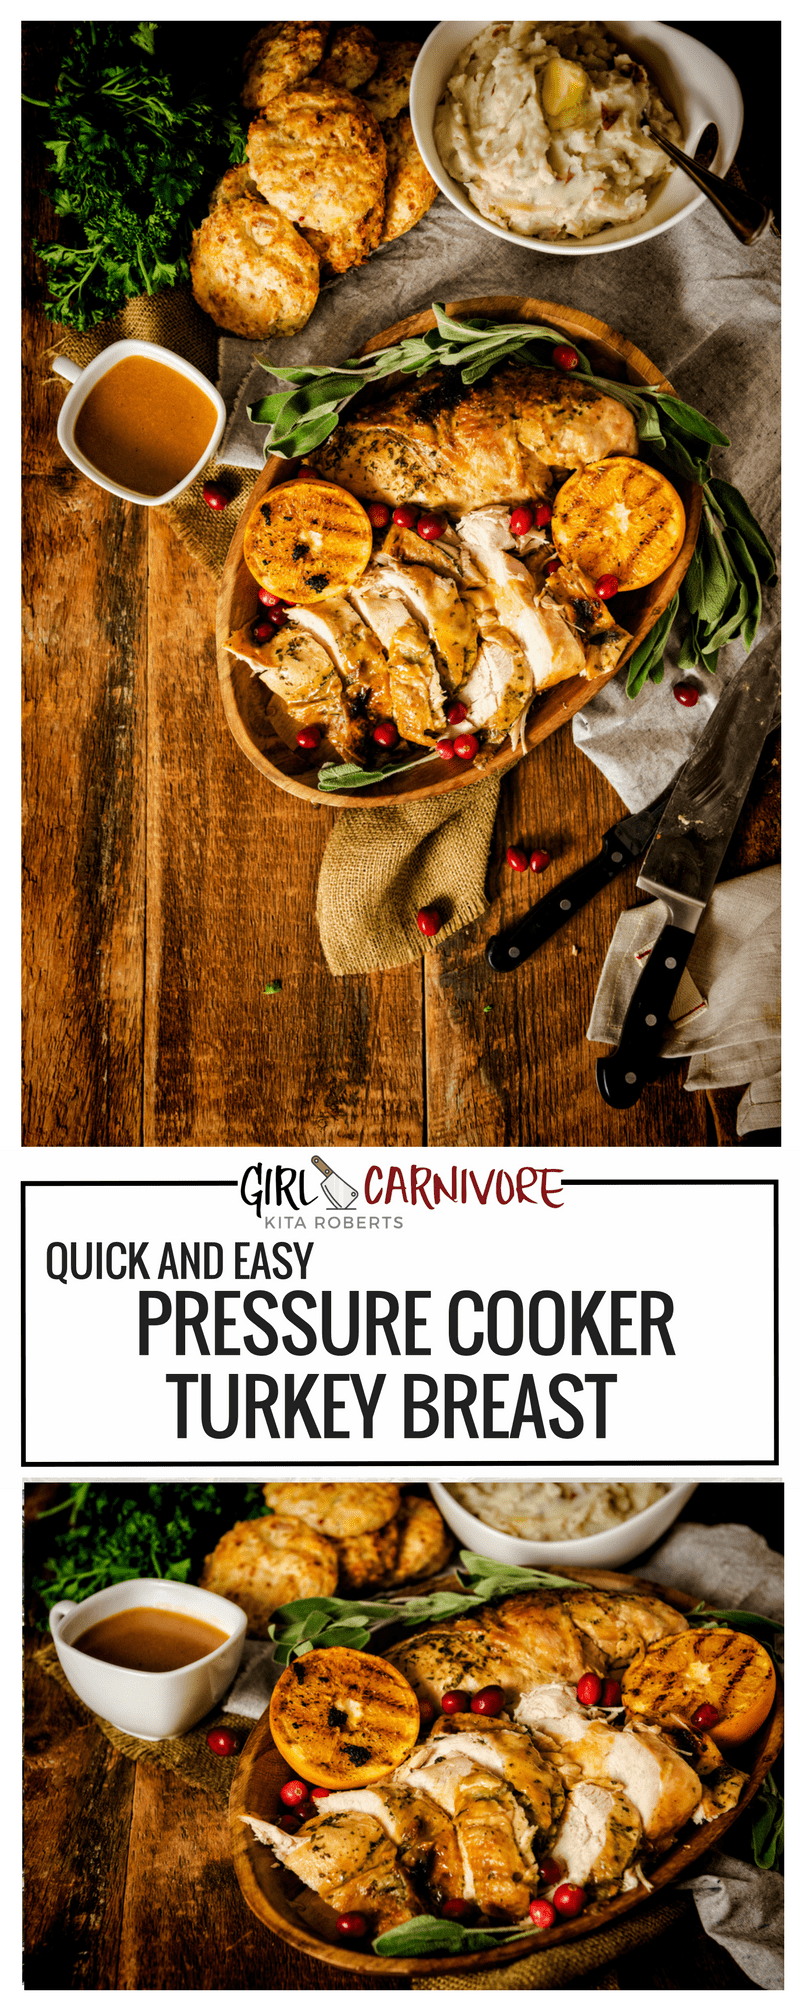 Quick and Easy Pressure Cooker Turkey Breast Recipe - perfect for smaller holiday get togethers. The whole recipe comes together in under 40 minutes. | Get the recipe at GirlCarnivore.com